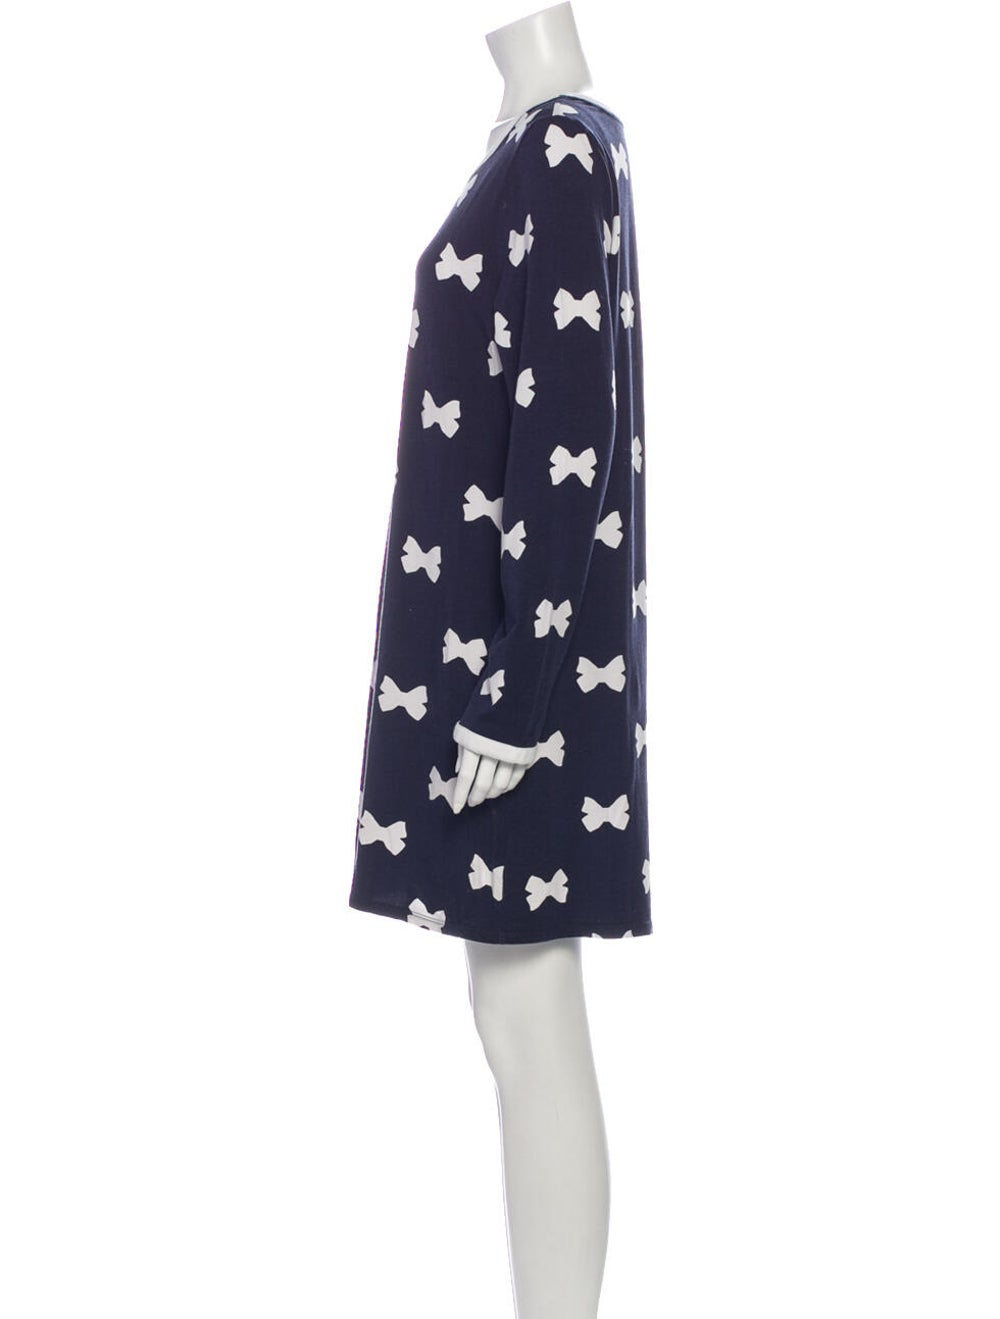 Kate Spade New York Printed Pajamas Blue - image 2